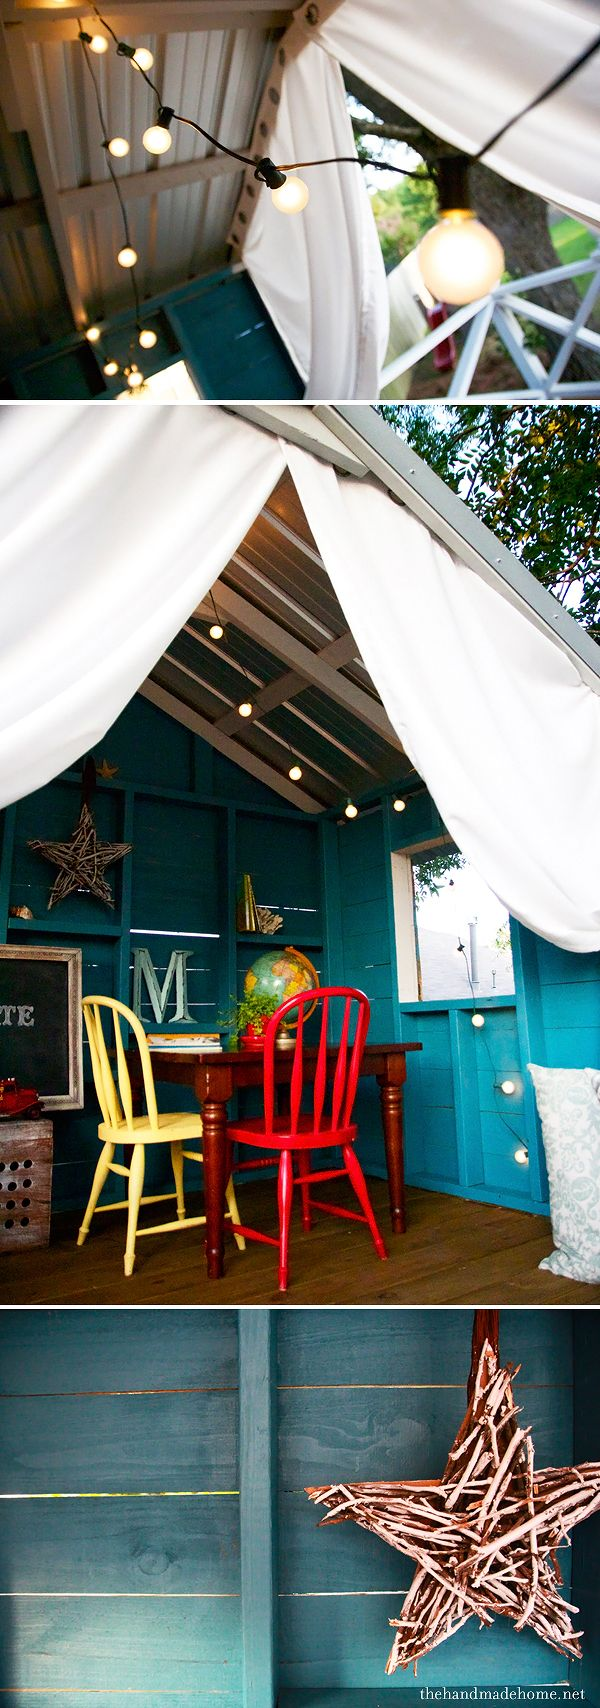 Find these string lights on our site! www.hometownevolution.com